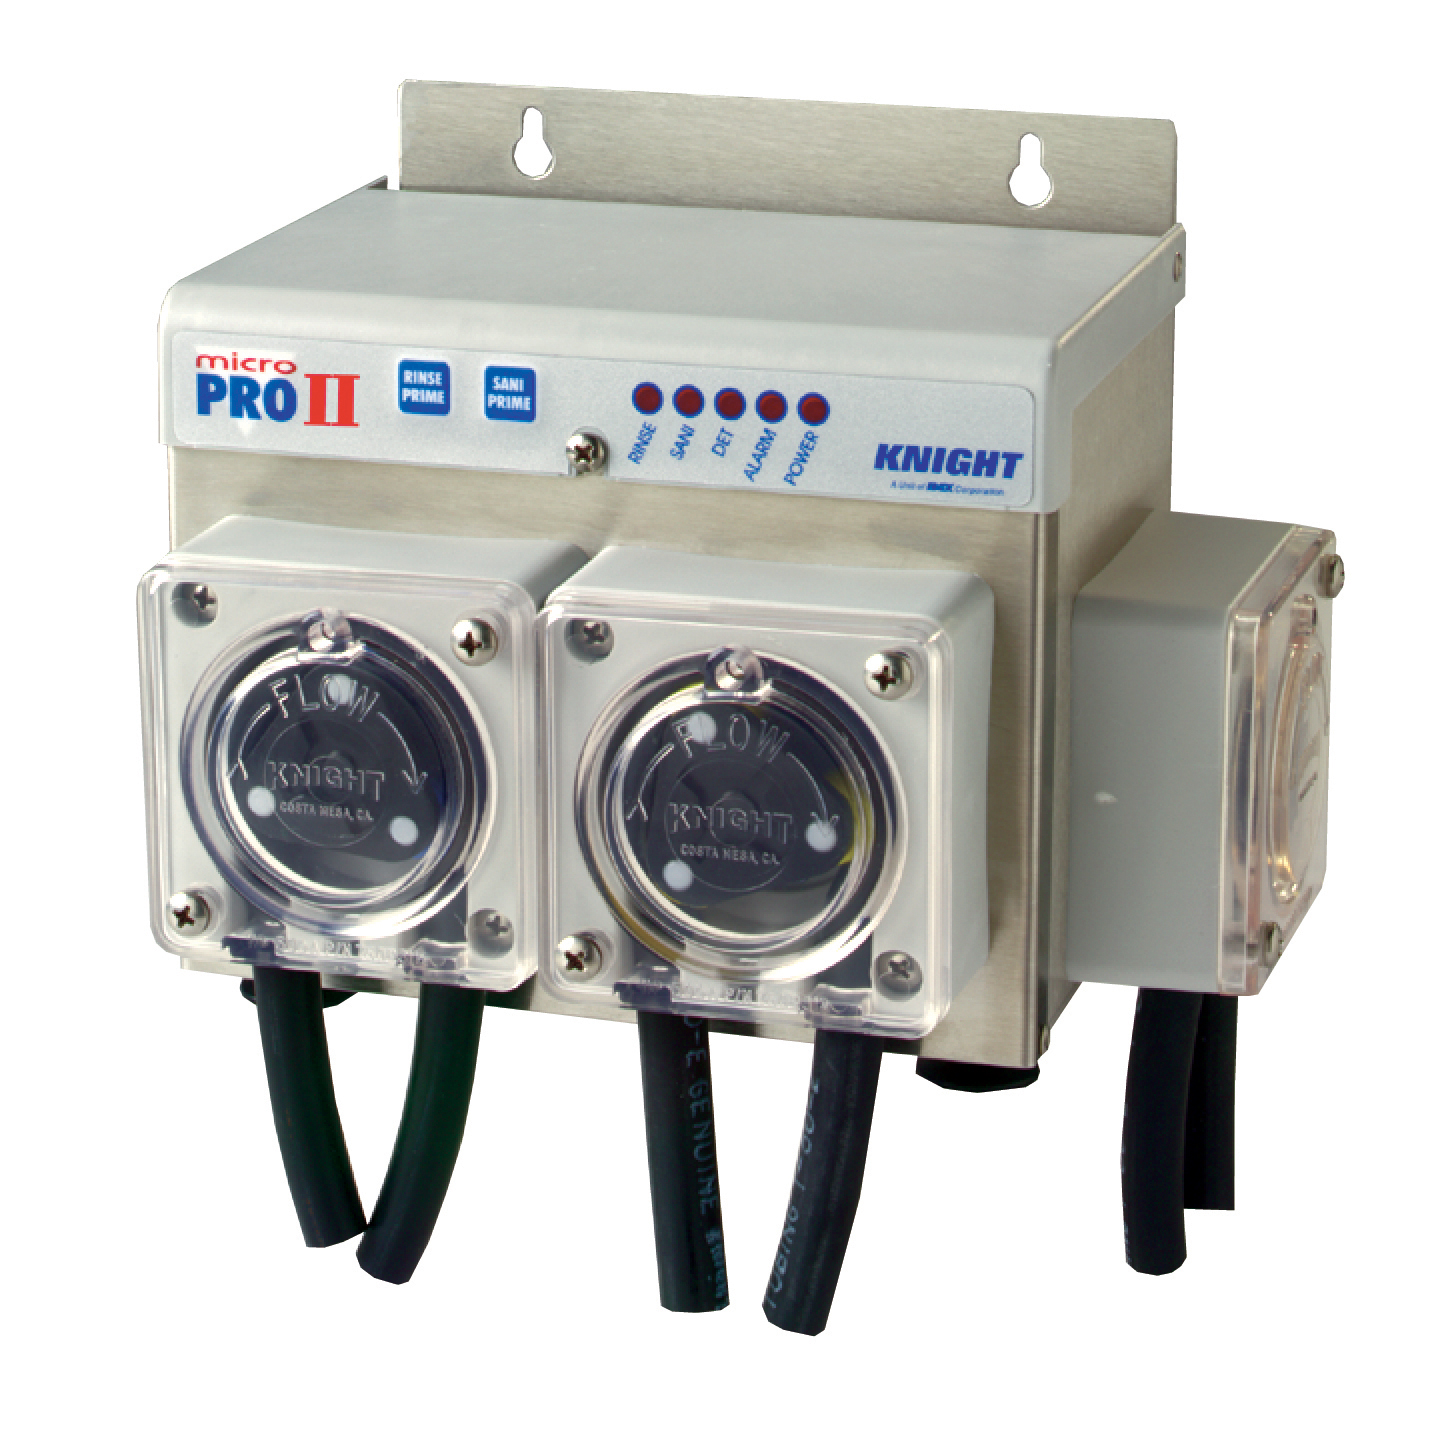 Automatic Chemical Dispensers ~ Knight llc commercial and institutional food service